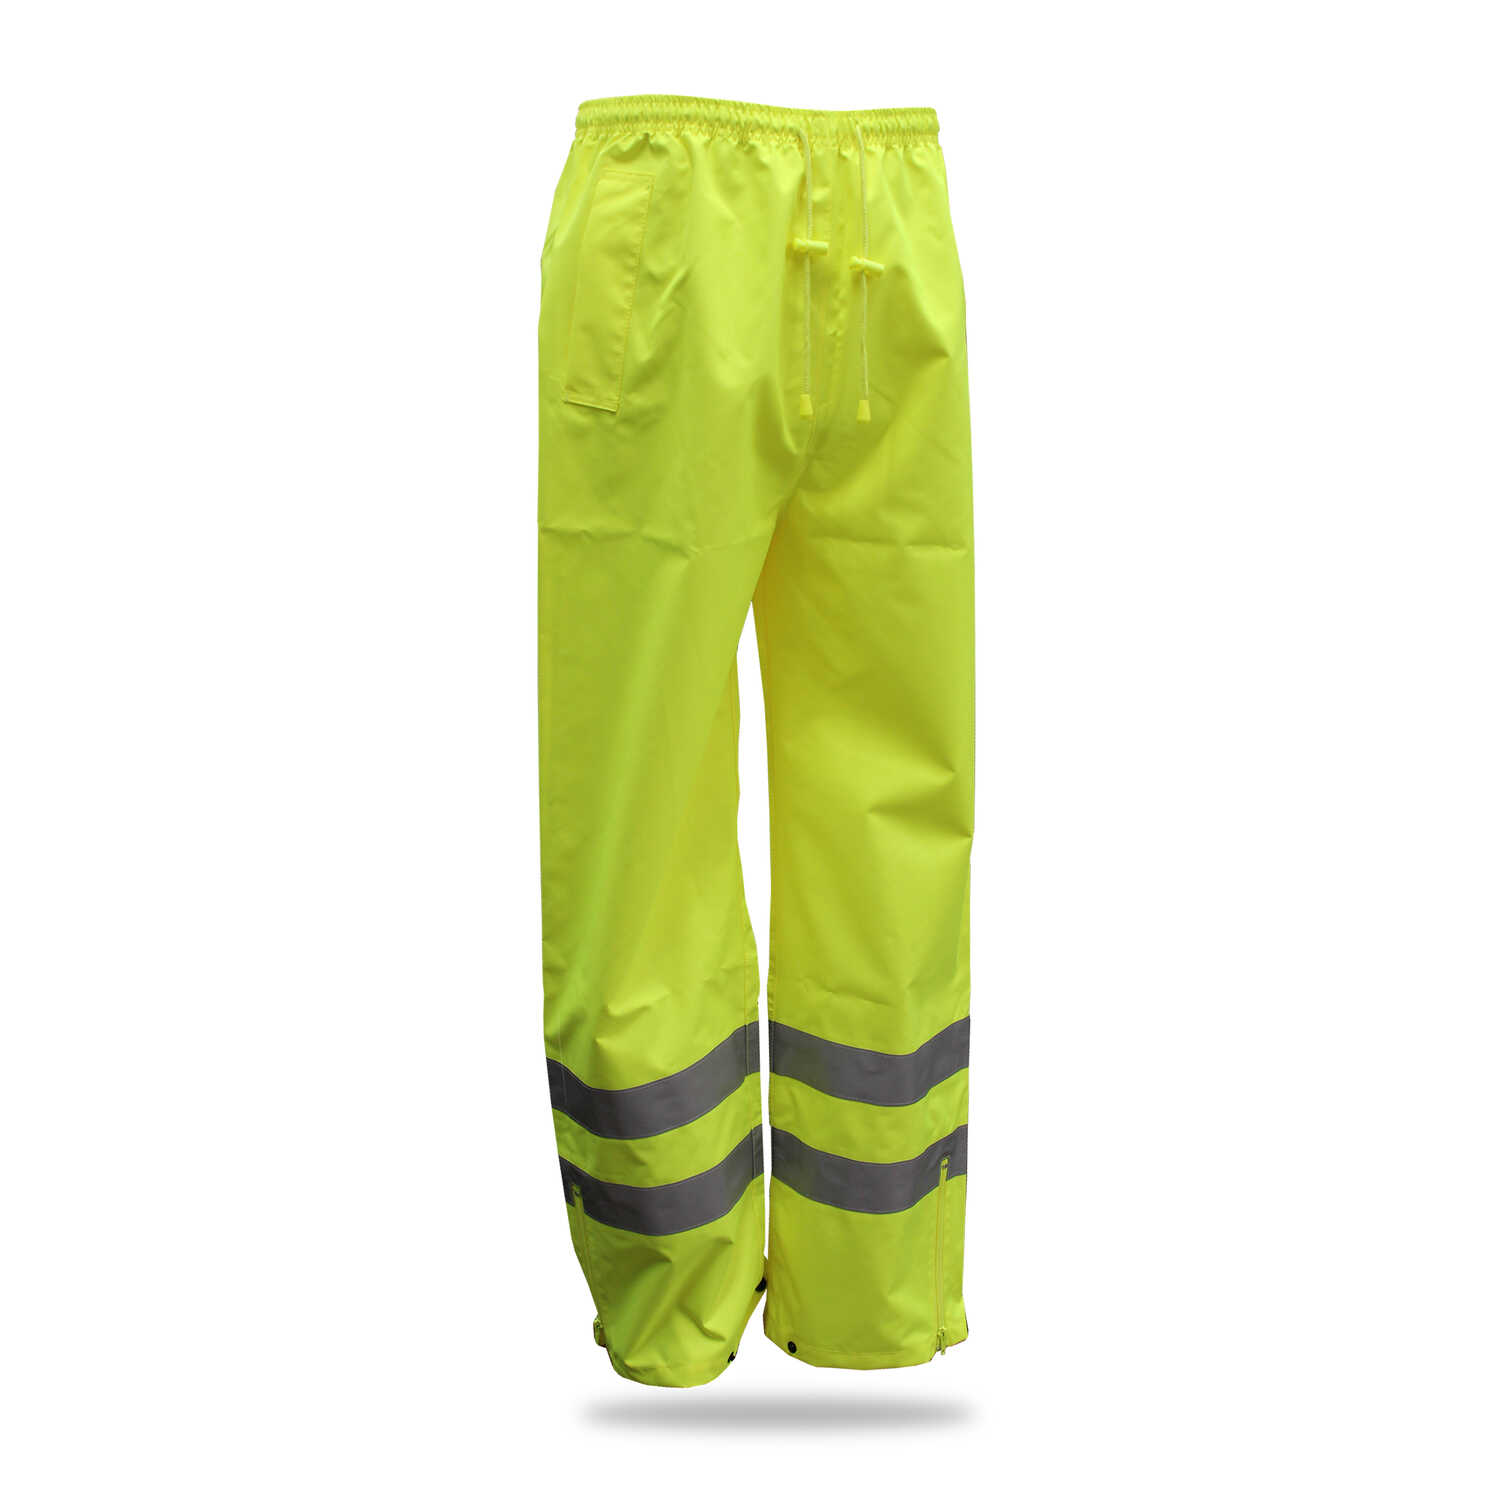 Boss  Hi-Vis  Yellow  Polyester  Rain Pants  M